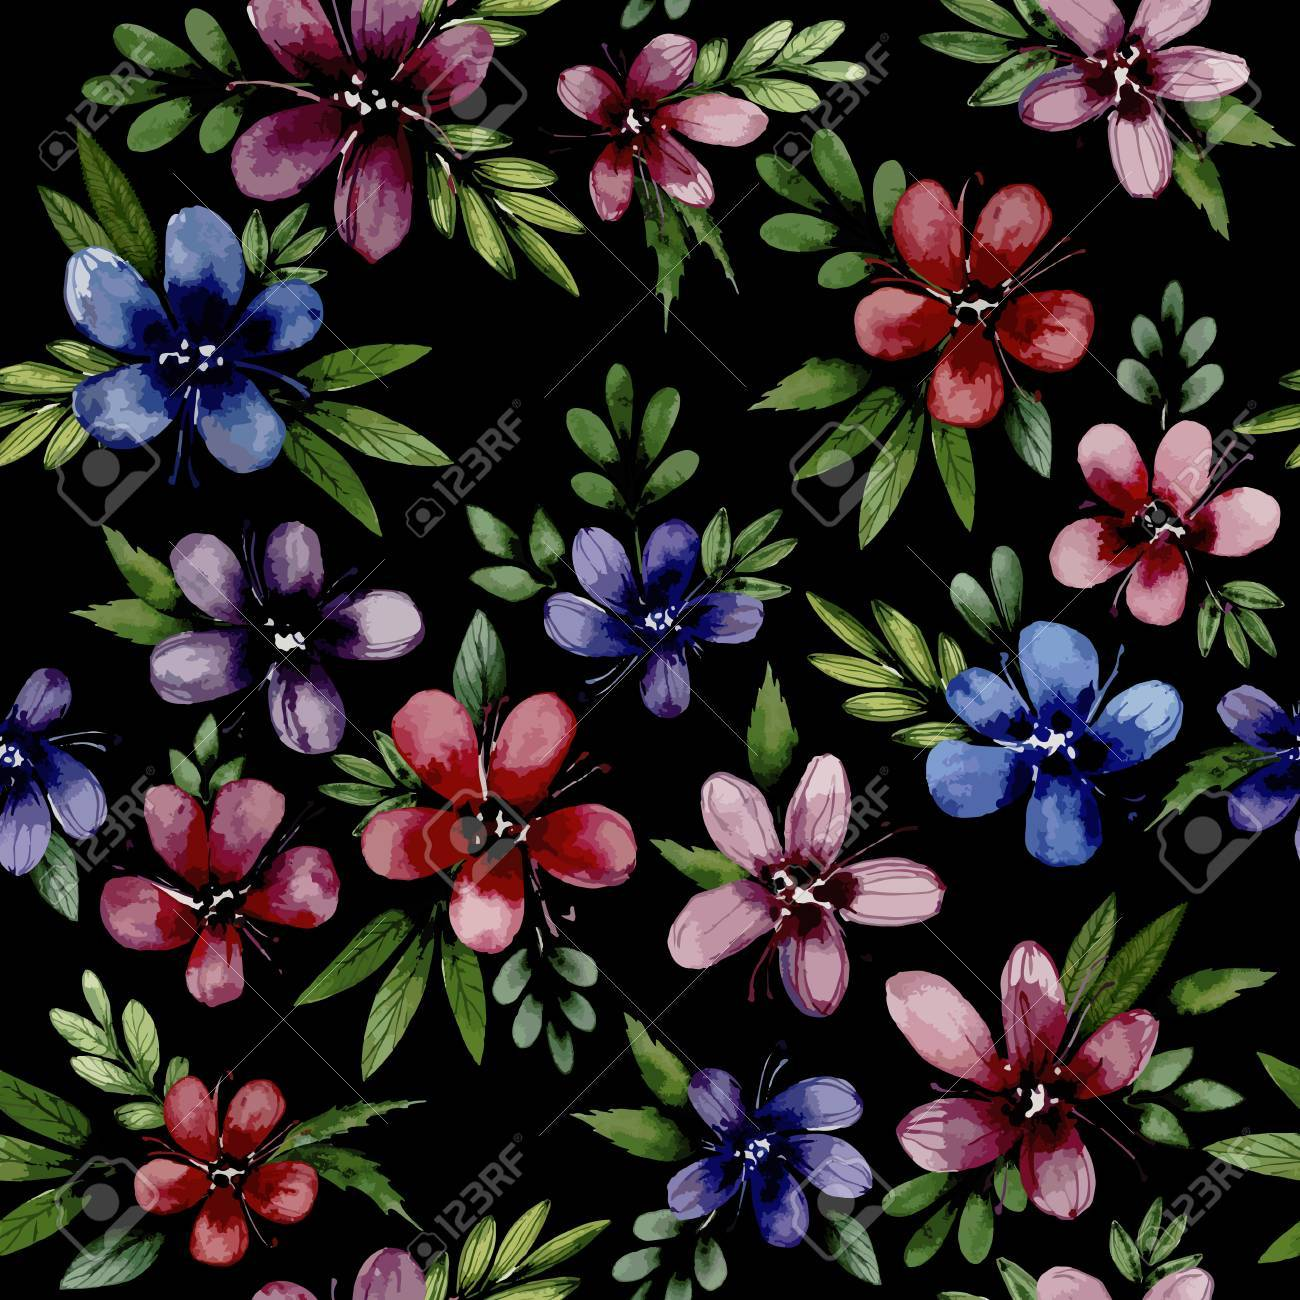 Seamless Pattern Wiht Watercolor Flowers Blue Red Pink Flowers